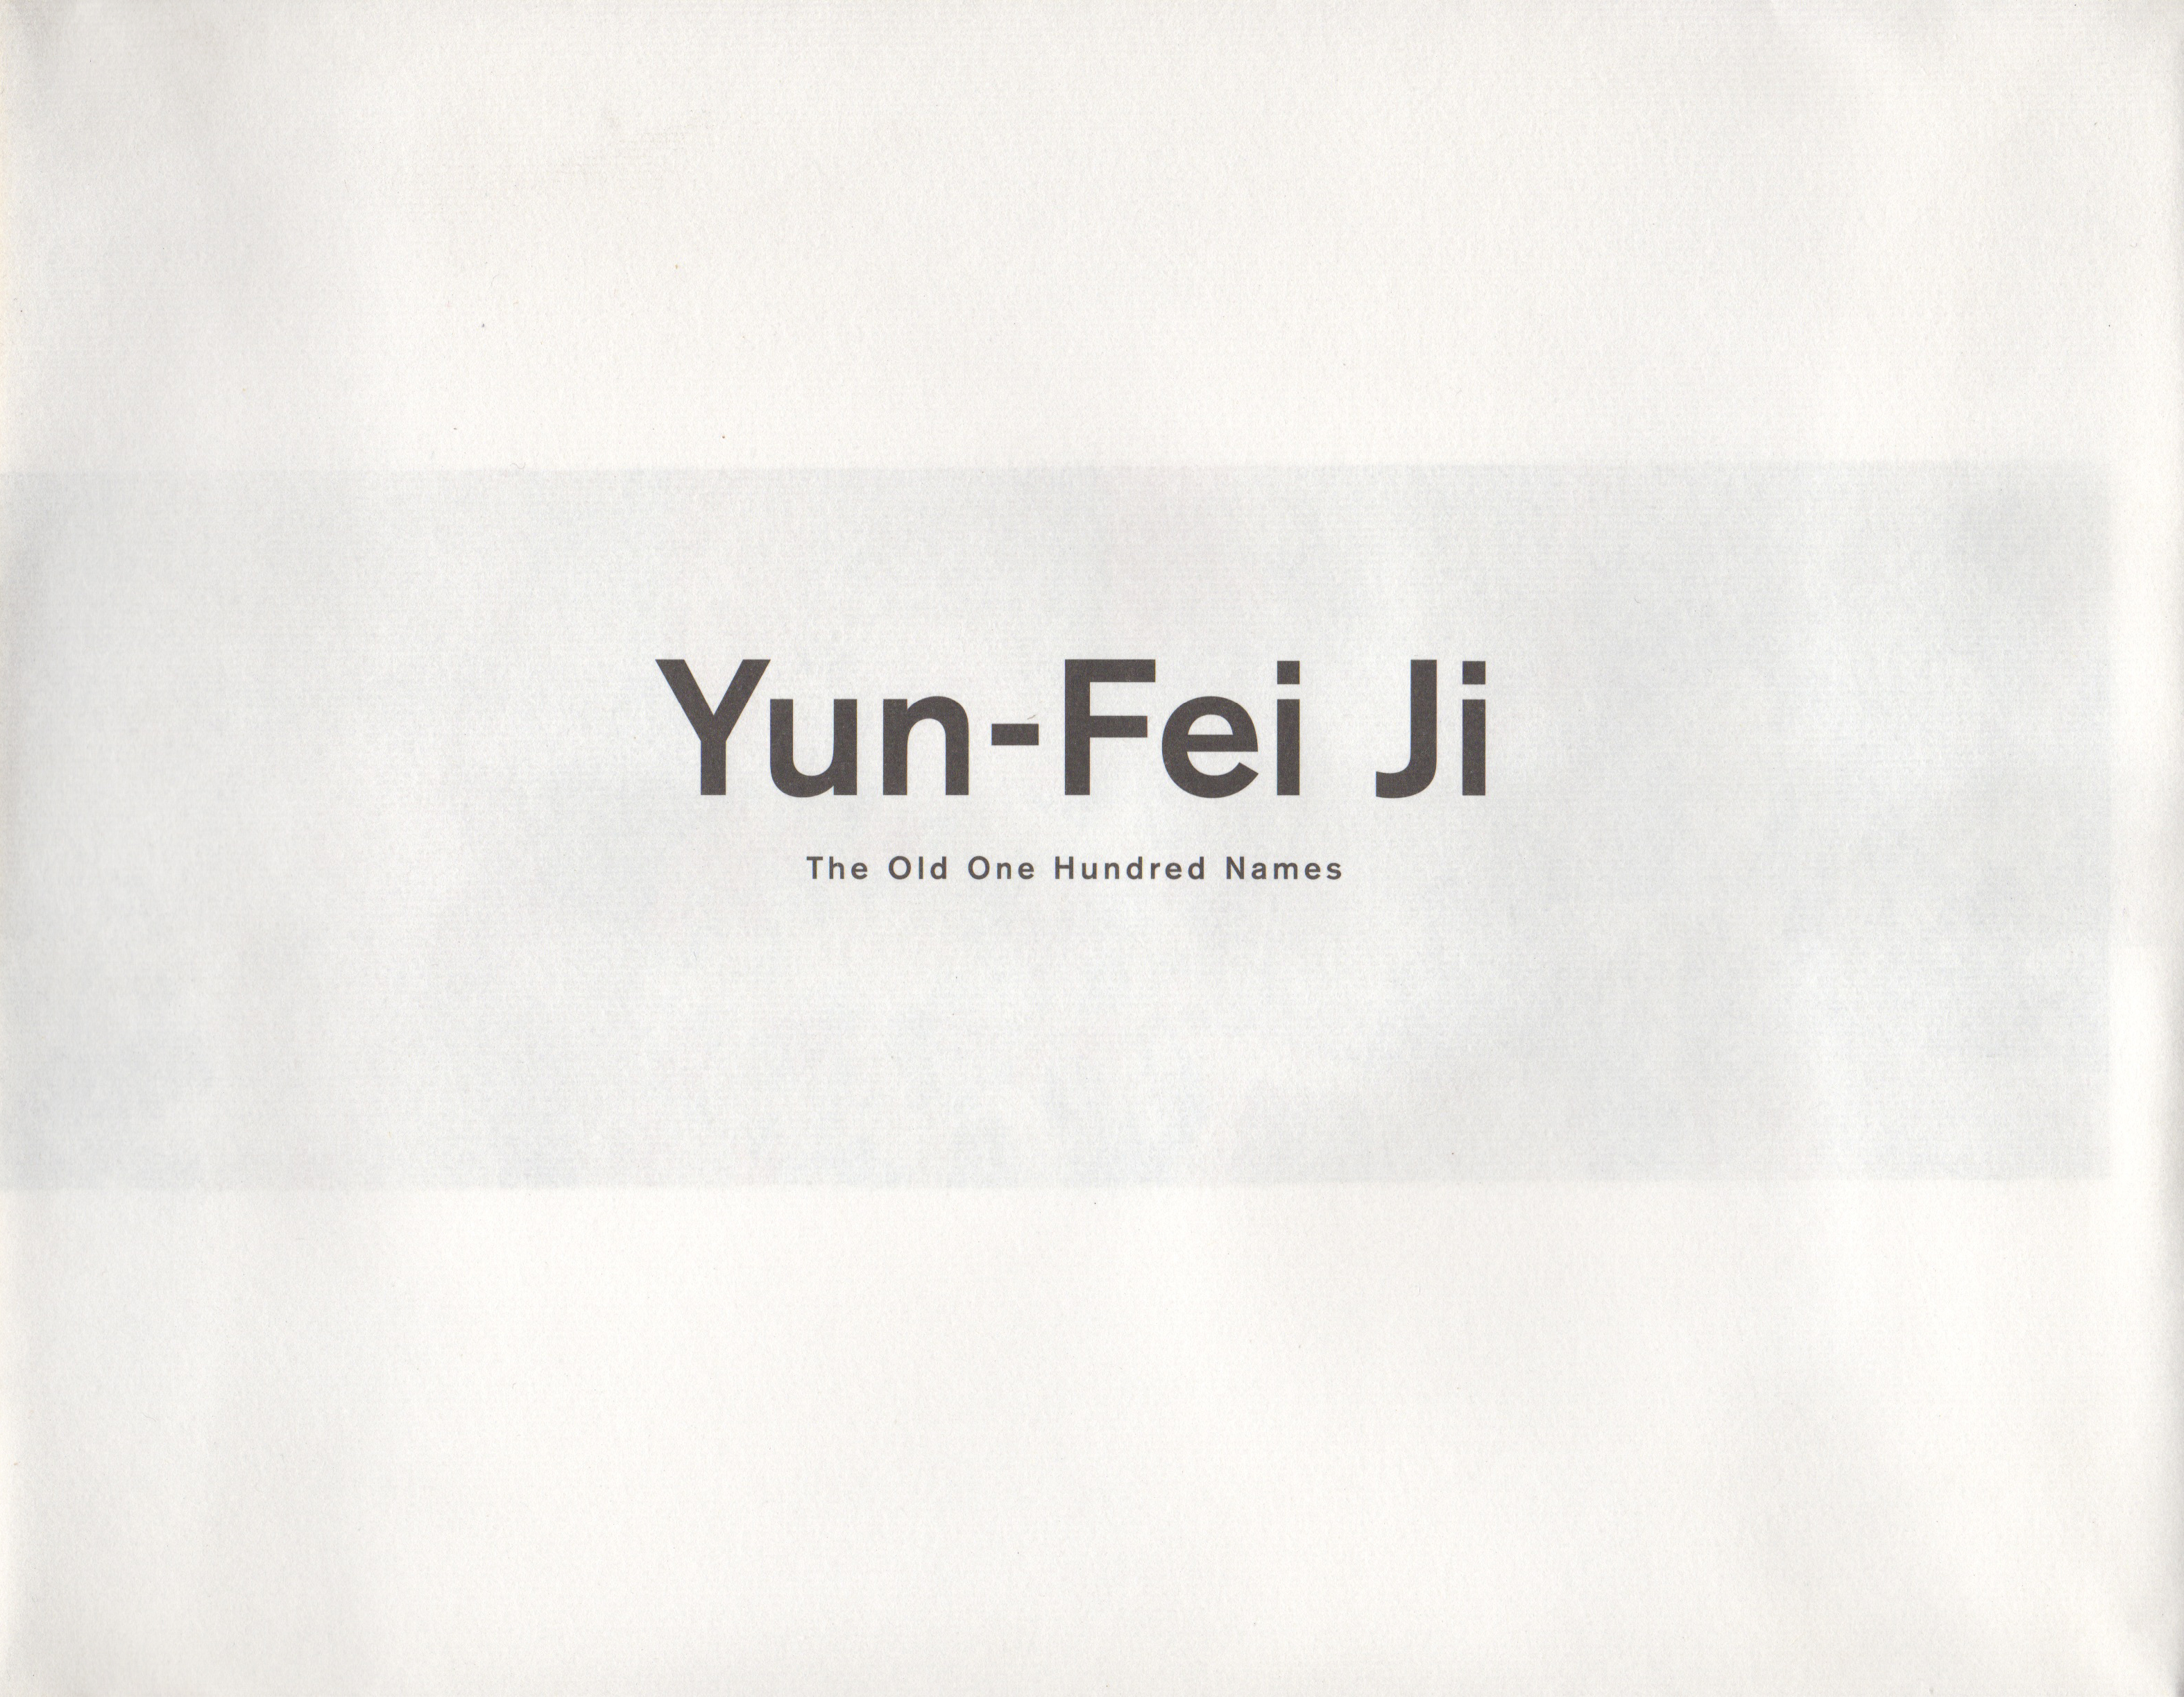 Yun-Fei Ji: The Old One Hundred Names catalog cover